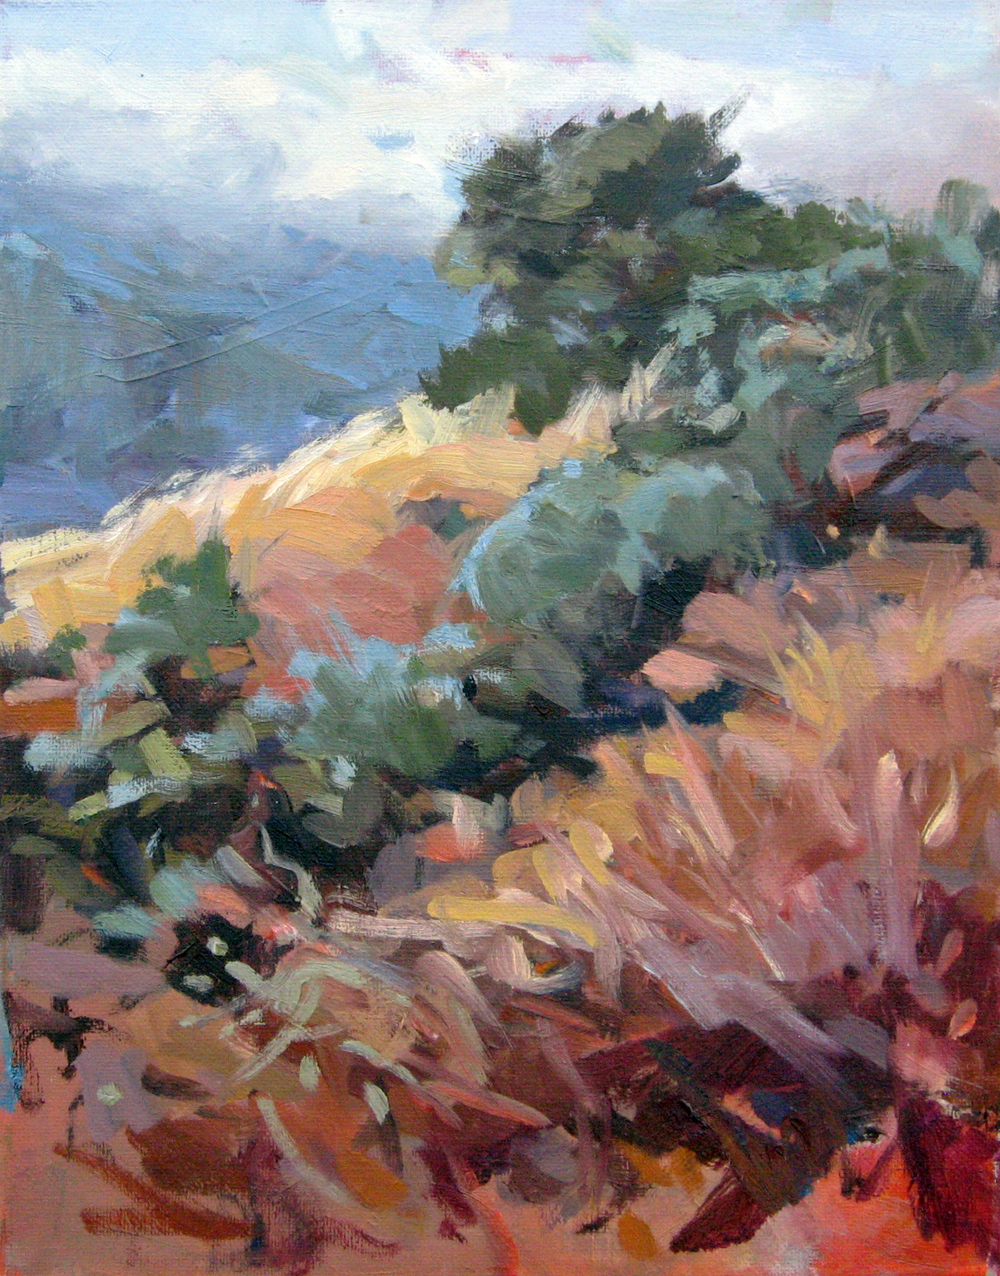 "Mist on the Divide • oil on canvas • 11 x 14"" * $225"